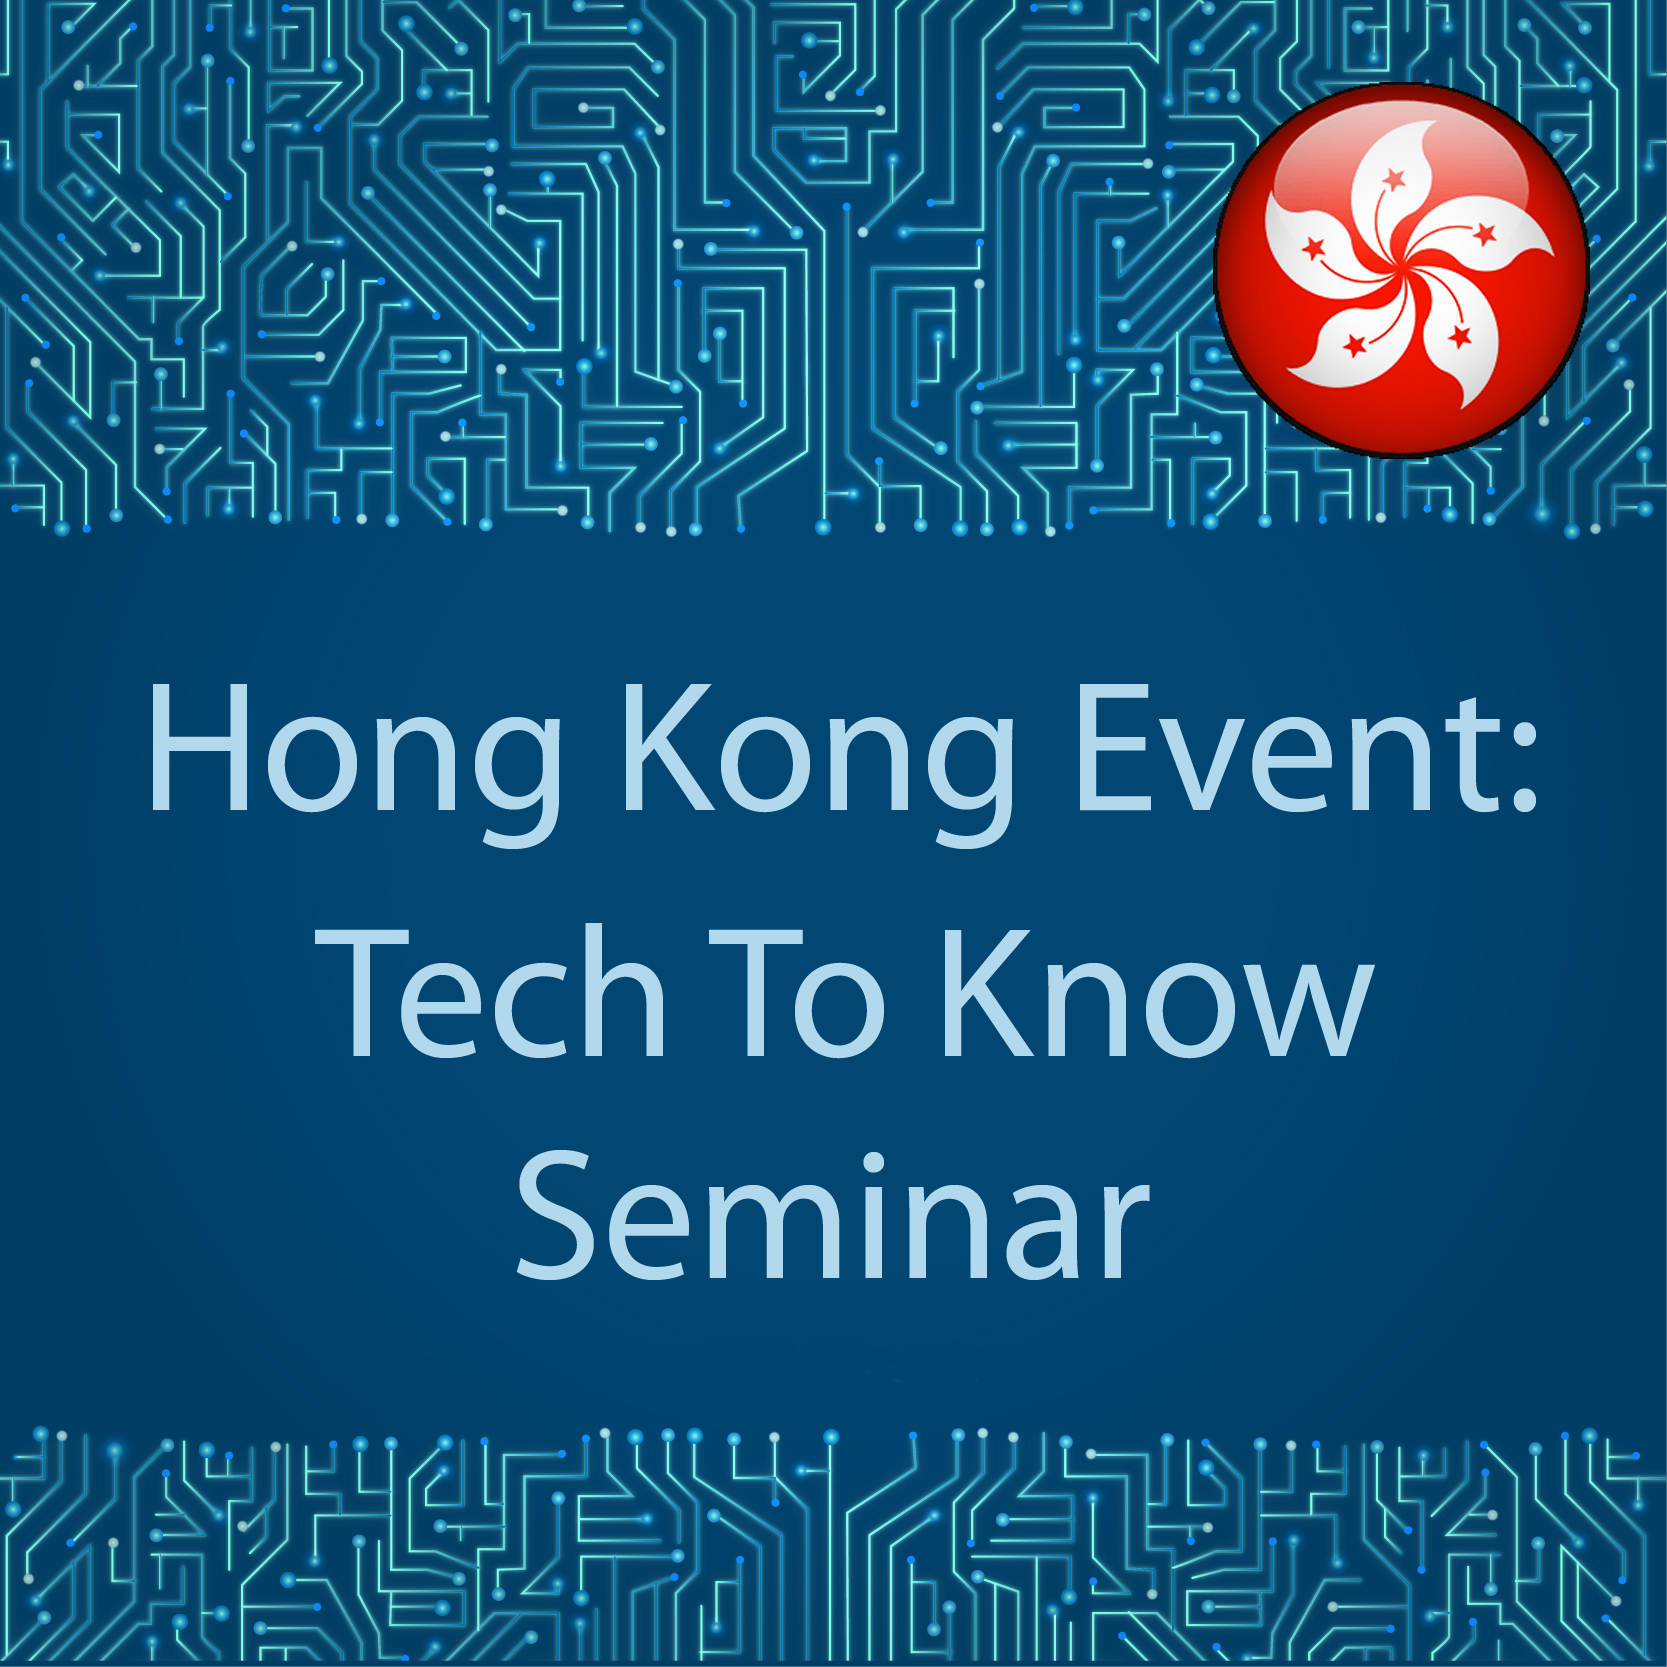 Feb 22 - Hong Kong Tech to Know Event